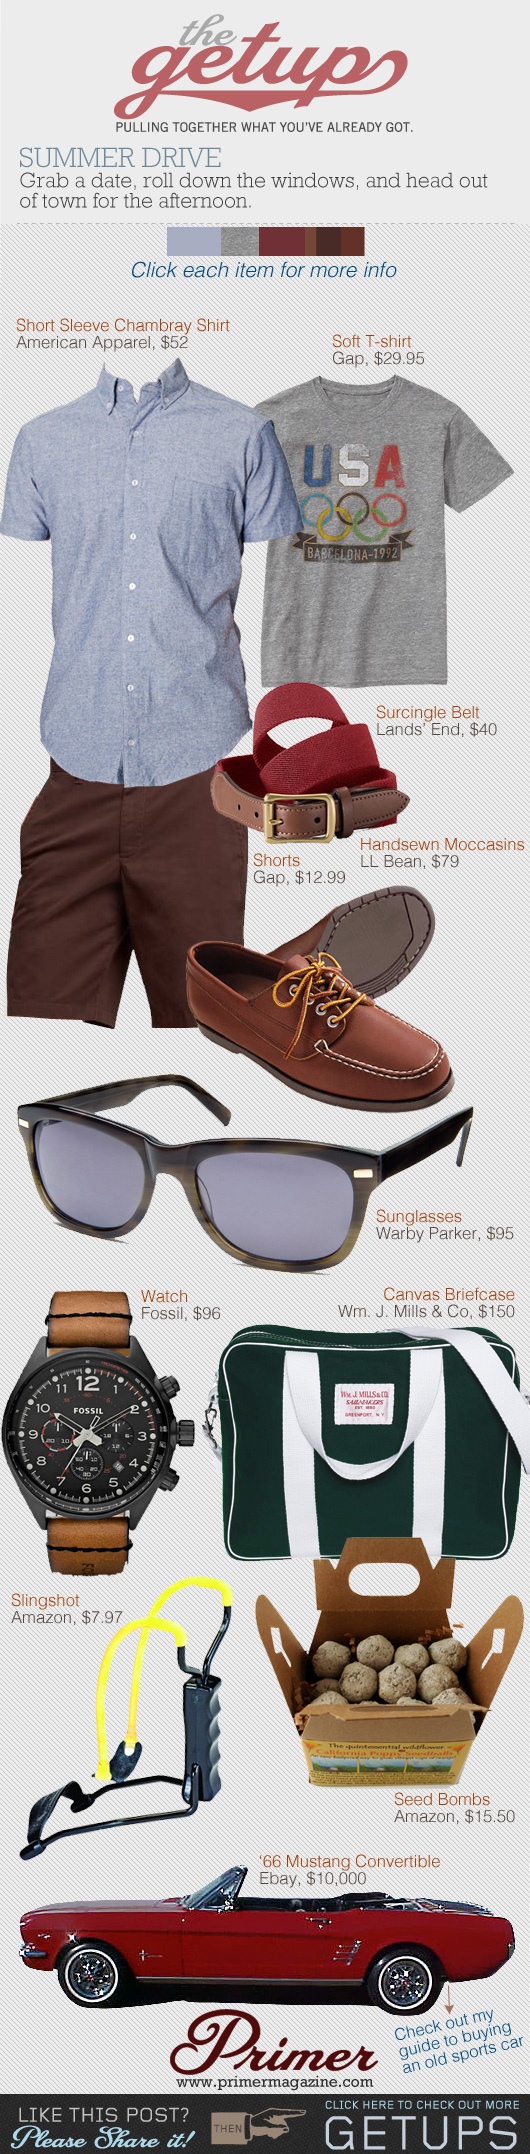 The Getup outfit collage - blue shirt, t-shirt, brown shorts, camp moc shoes